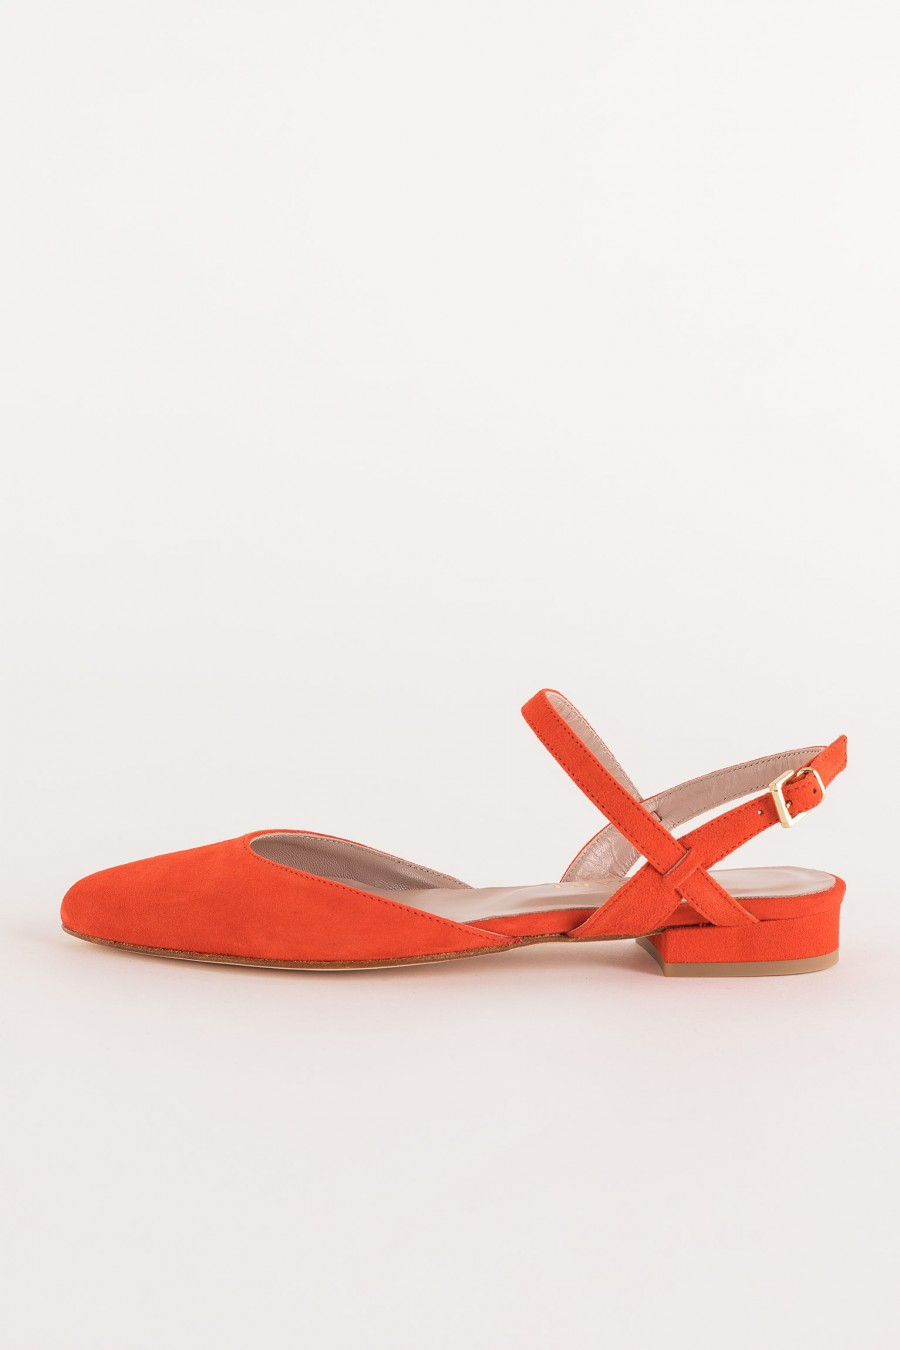 coral-colored suede ballerina